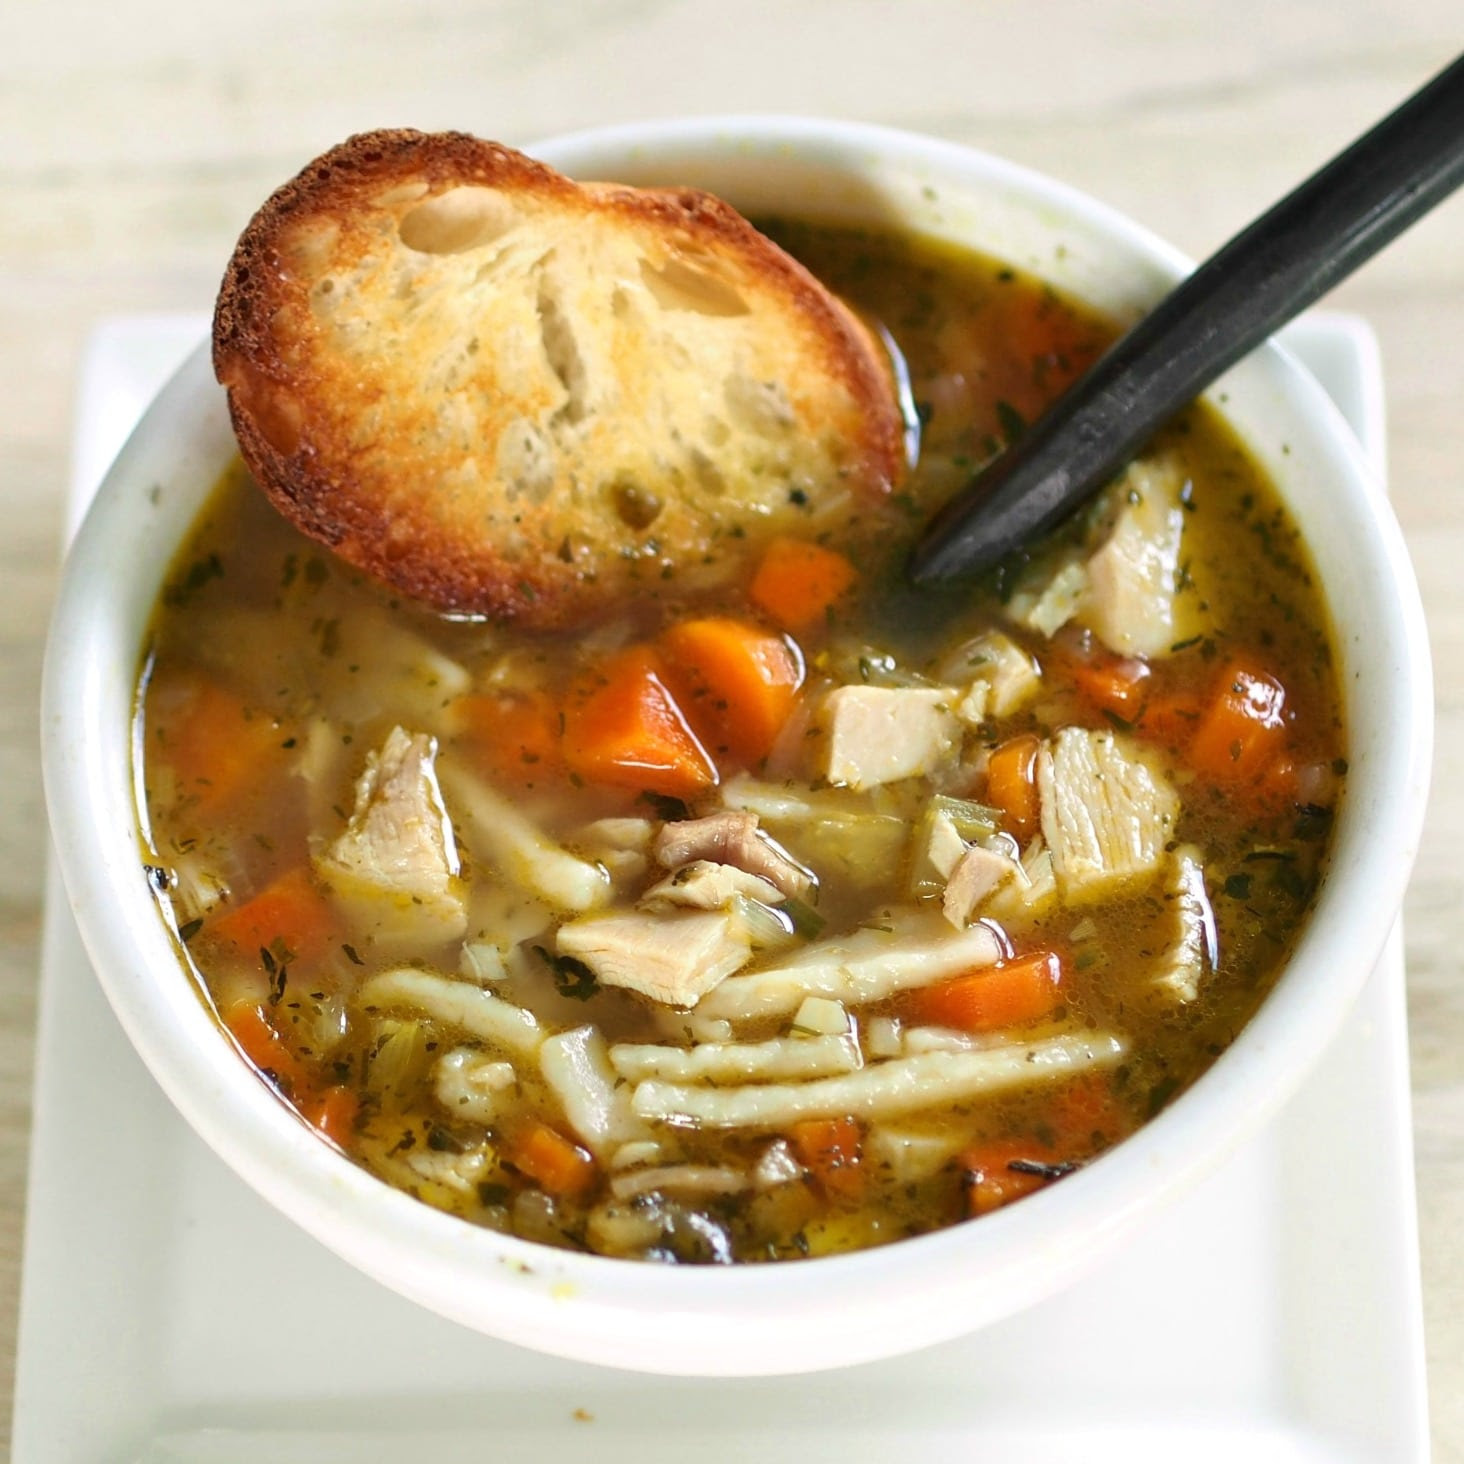 Chicken-Noodle-Soup-simplysated.com